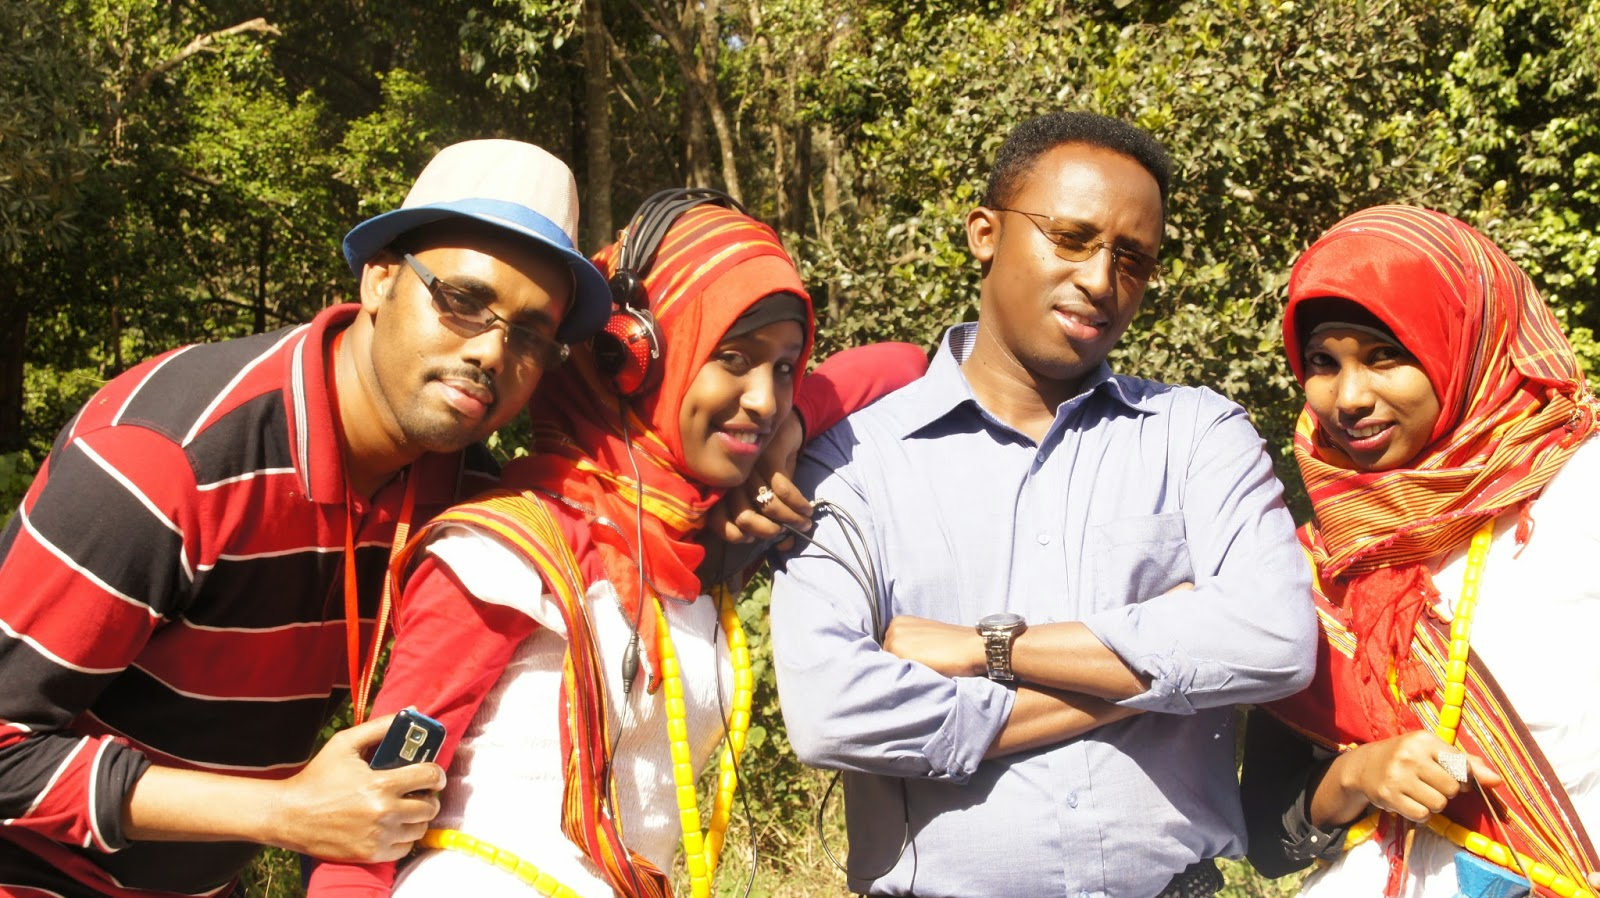 somali dating culture Somali people think that canadians are somewhat liberal in their relationships and that they display intimate affection publicly on certain occasions so it is strongly encouraged to stay away from being intimate in front of others in the somali culture.